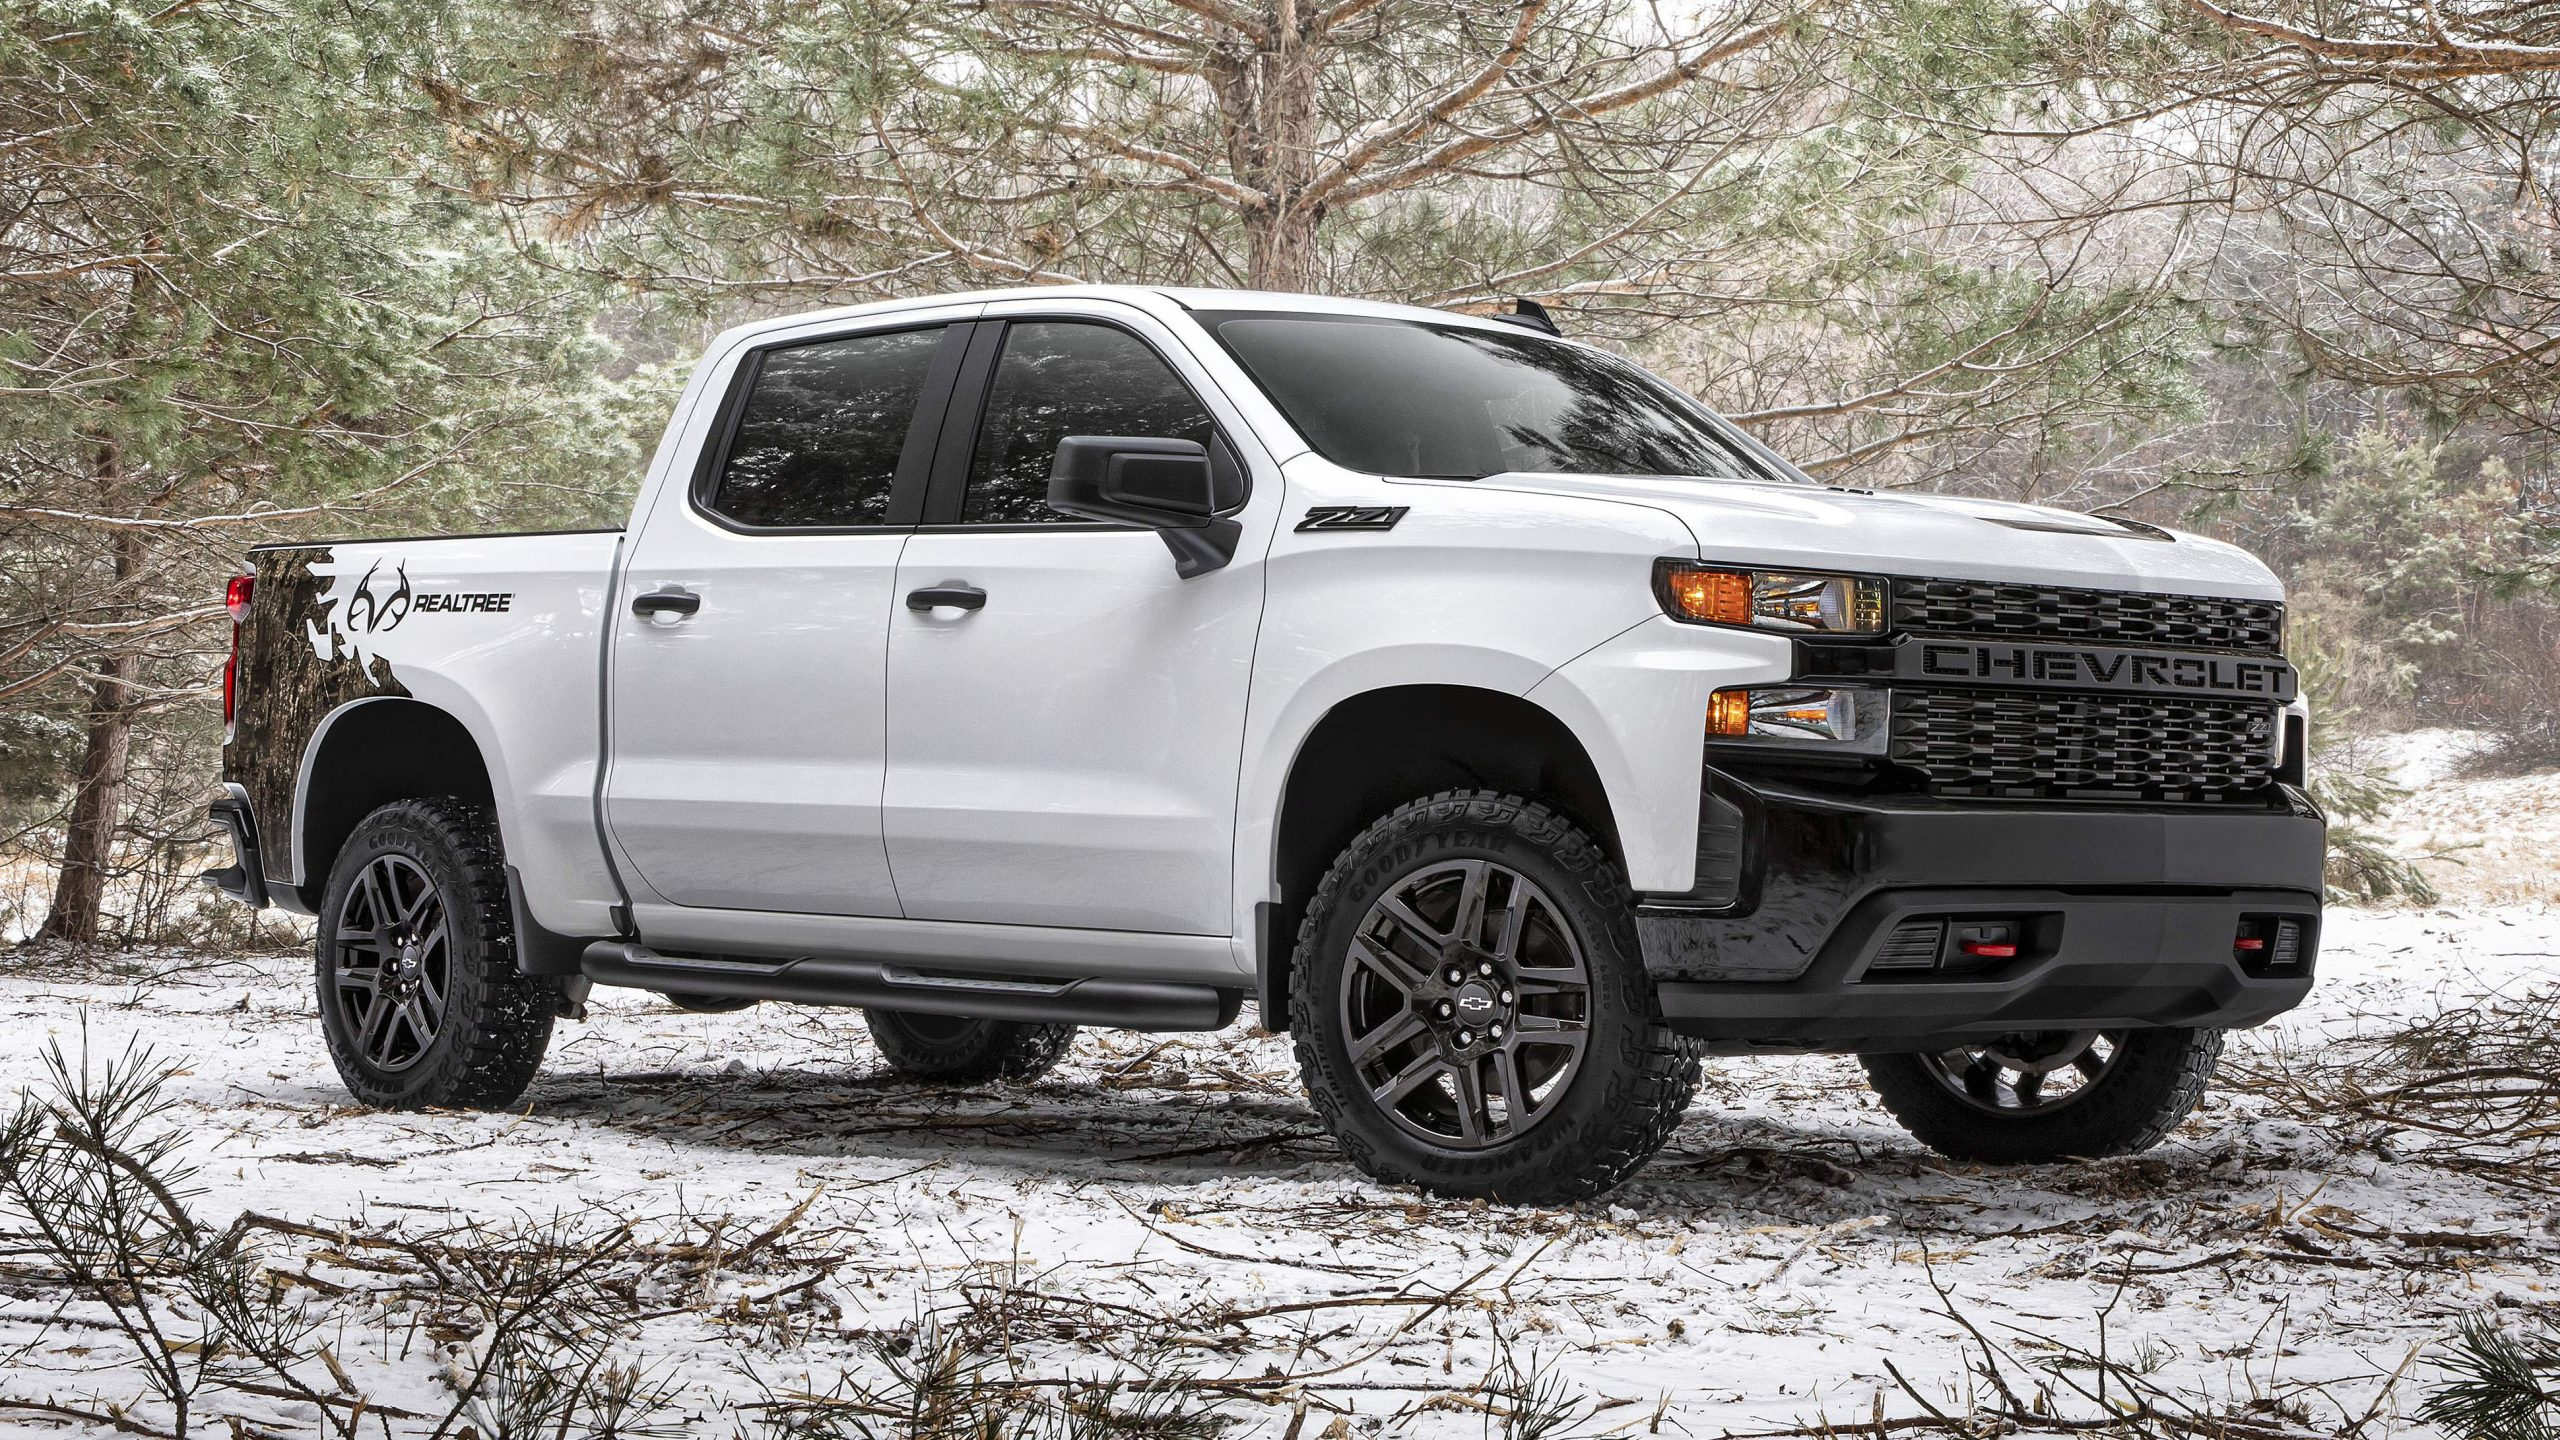 2021 Chevy Silverado Realtree Edition Photo Gallery | Autoblog Cost Of A 2021 Chevy Silverado Incentives, Inside, Images